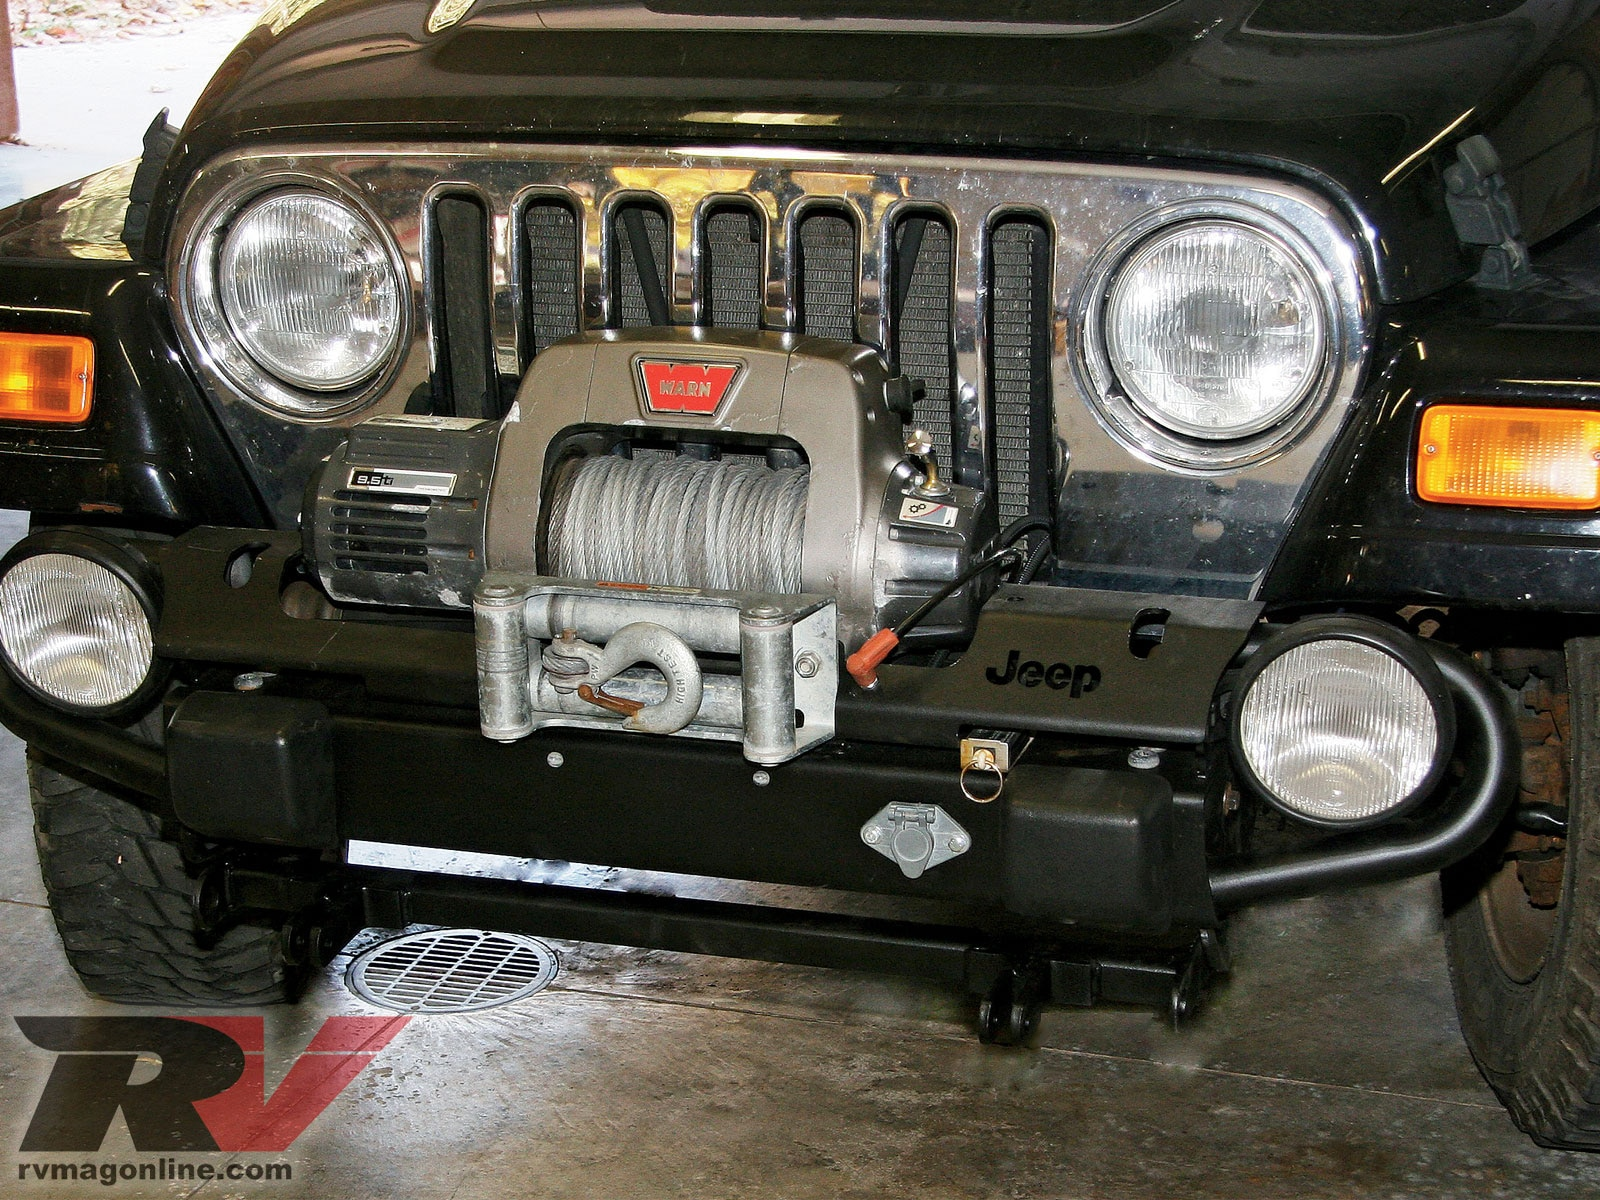 Tow Bar Socket As Well As Blue Ox Tow Bar Along With Tow Bar Wiring